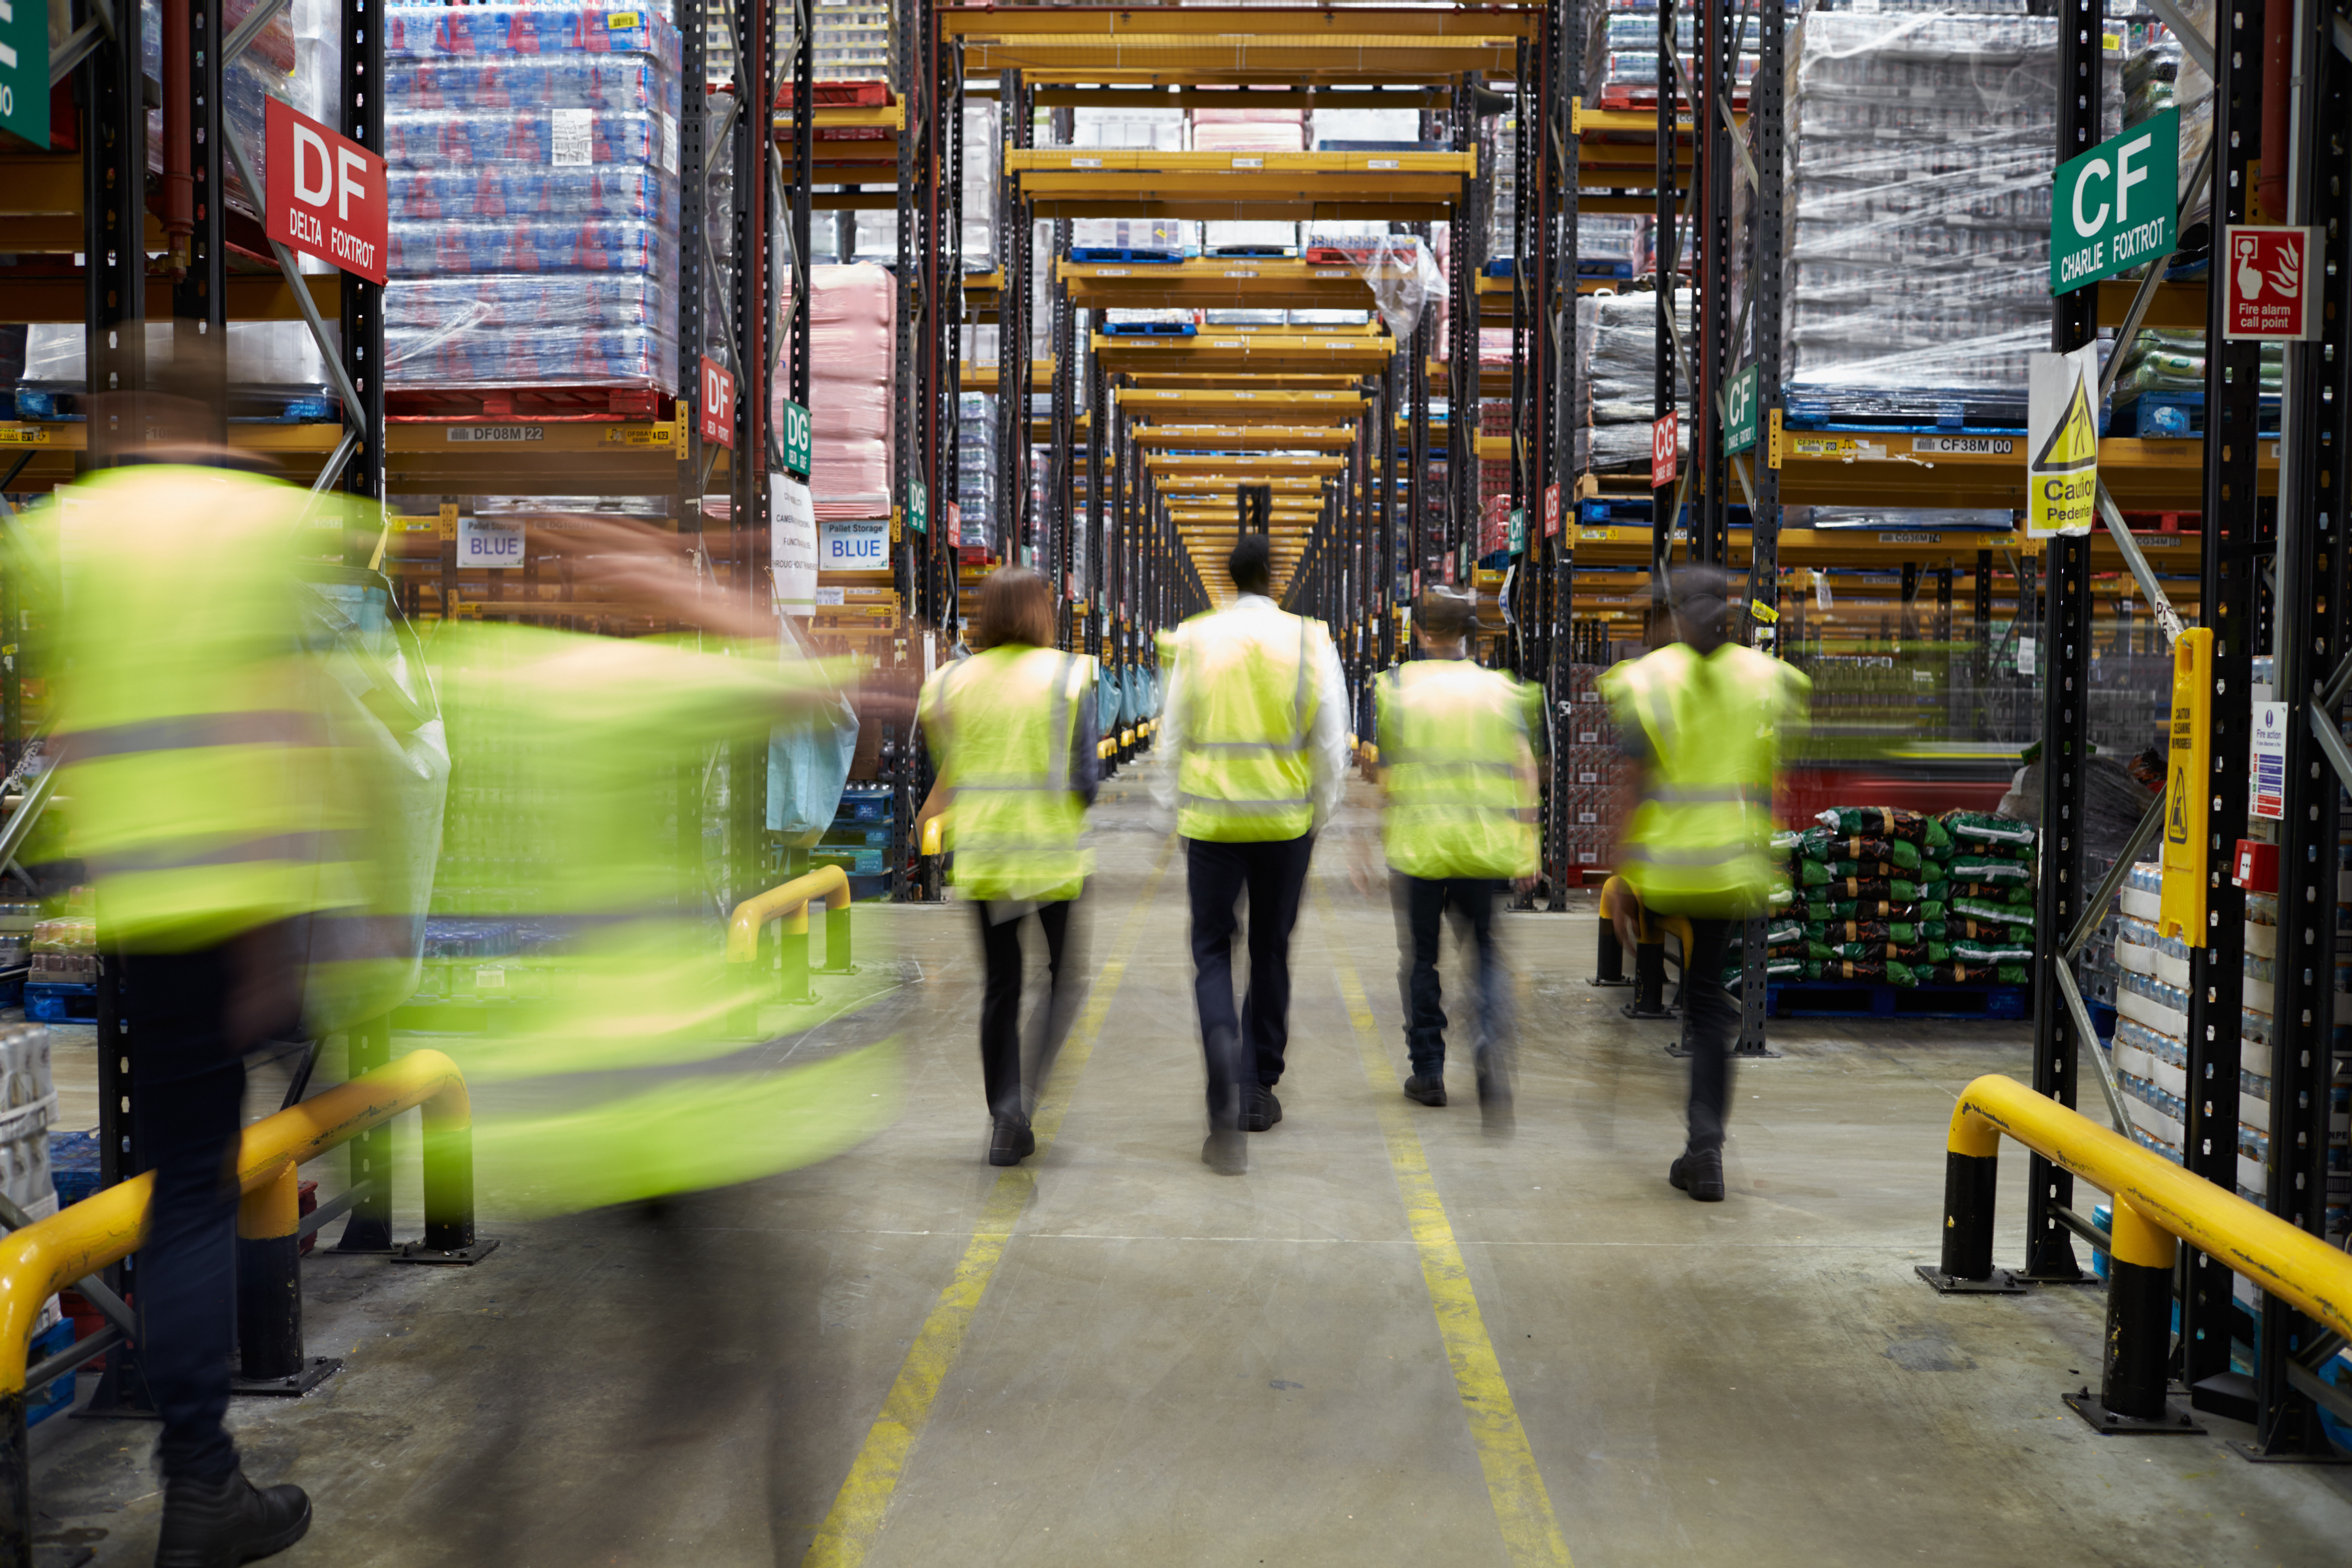 This week's top stories in supply chain and logistics: Maersk expands US warehousing network with $545M acquisition, searches for suppliers outside China double as coronavirus spreads, Bronx warehouse new answer to truck congestion, Target faces labor organizing effort at New Jersey warehouse, and Walmart posts mixed holiday sales.